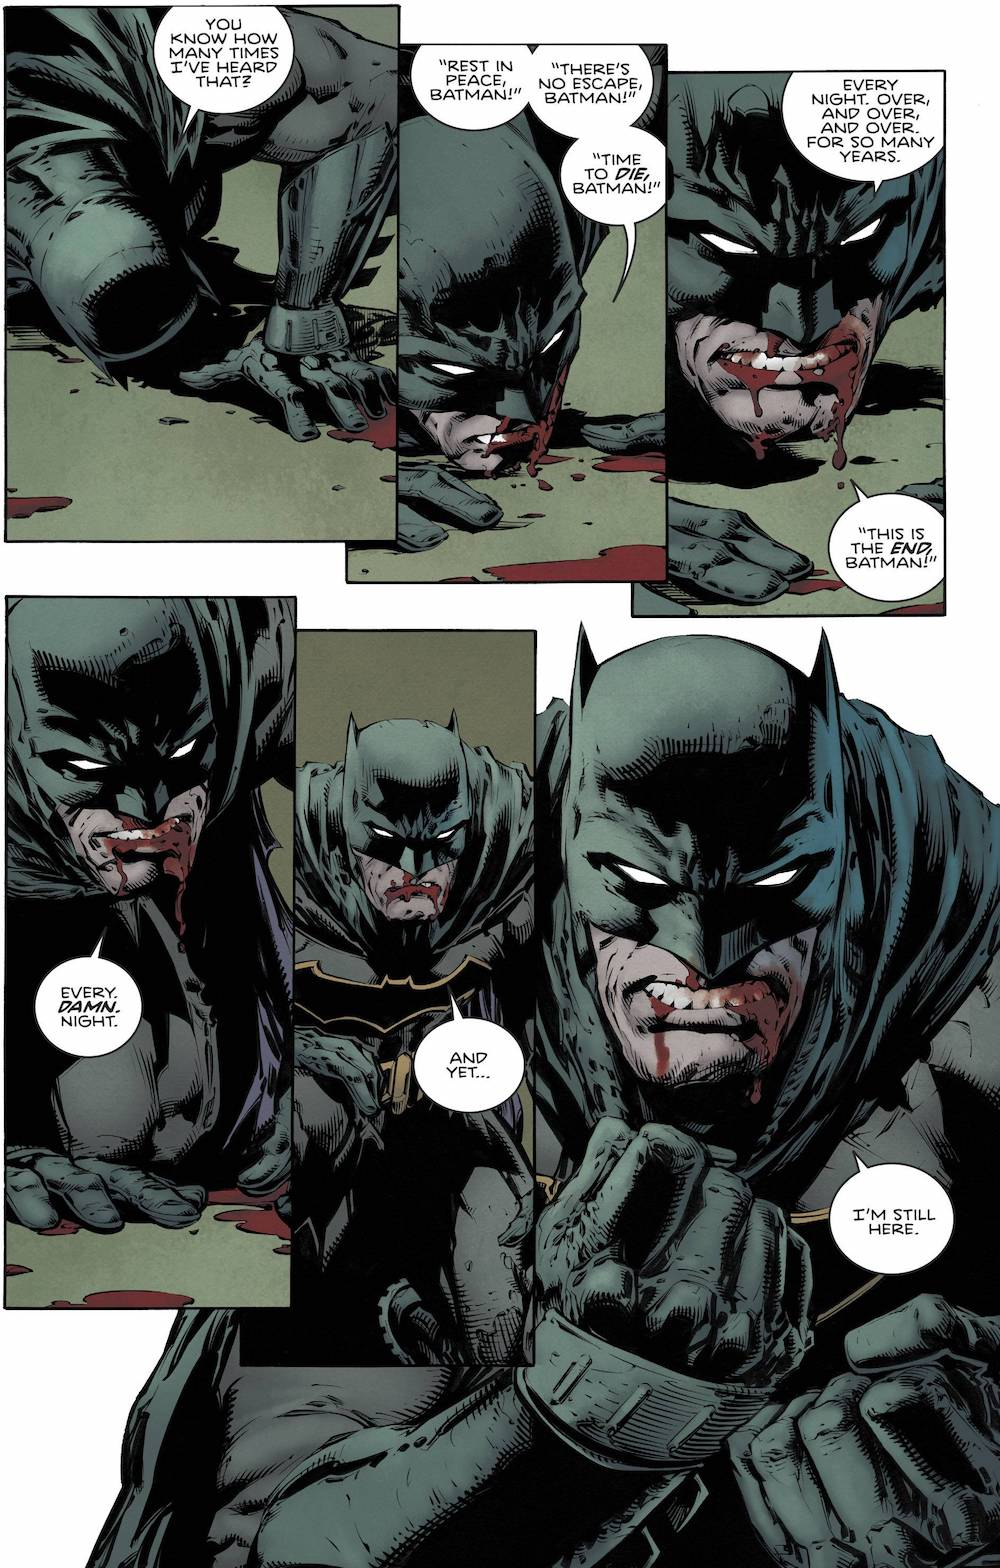 This is Why Batman Is so badass